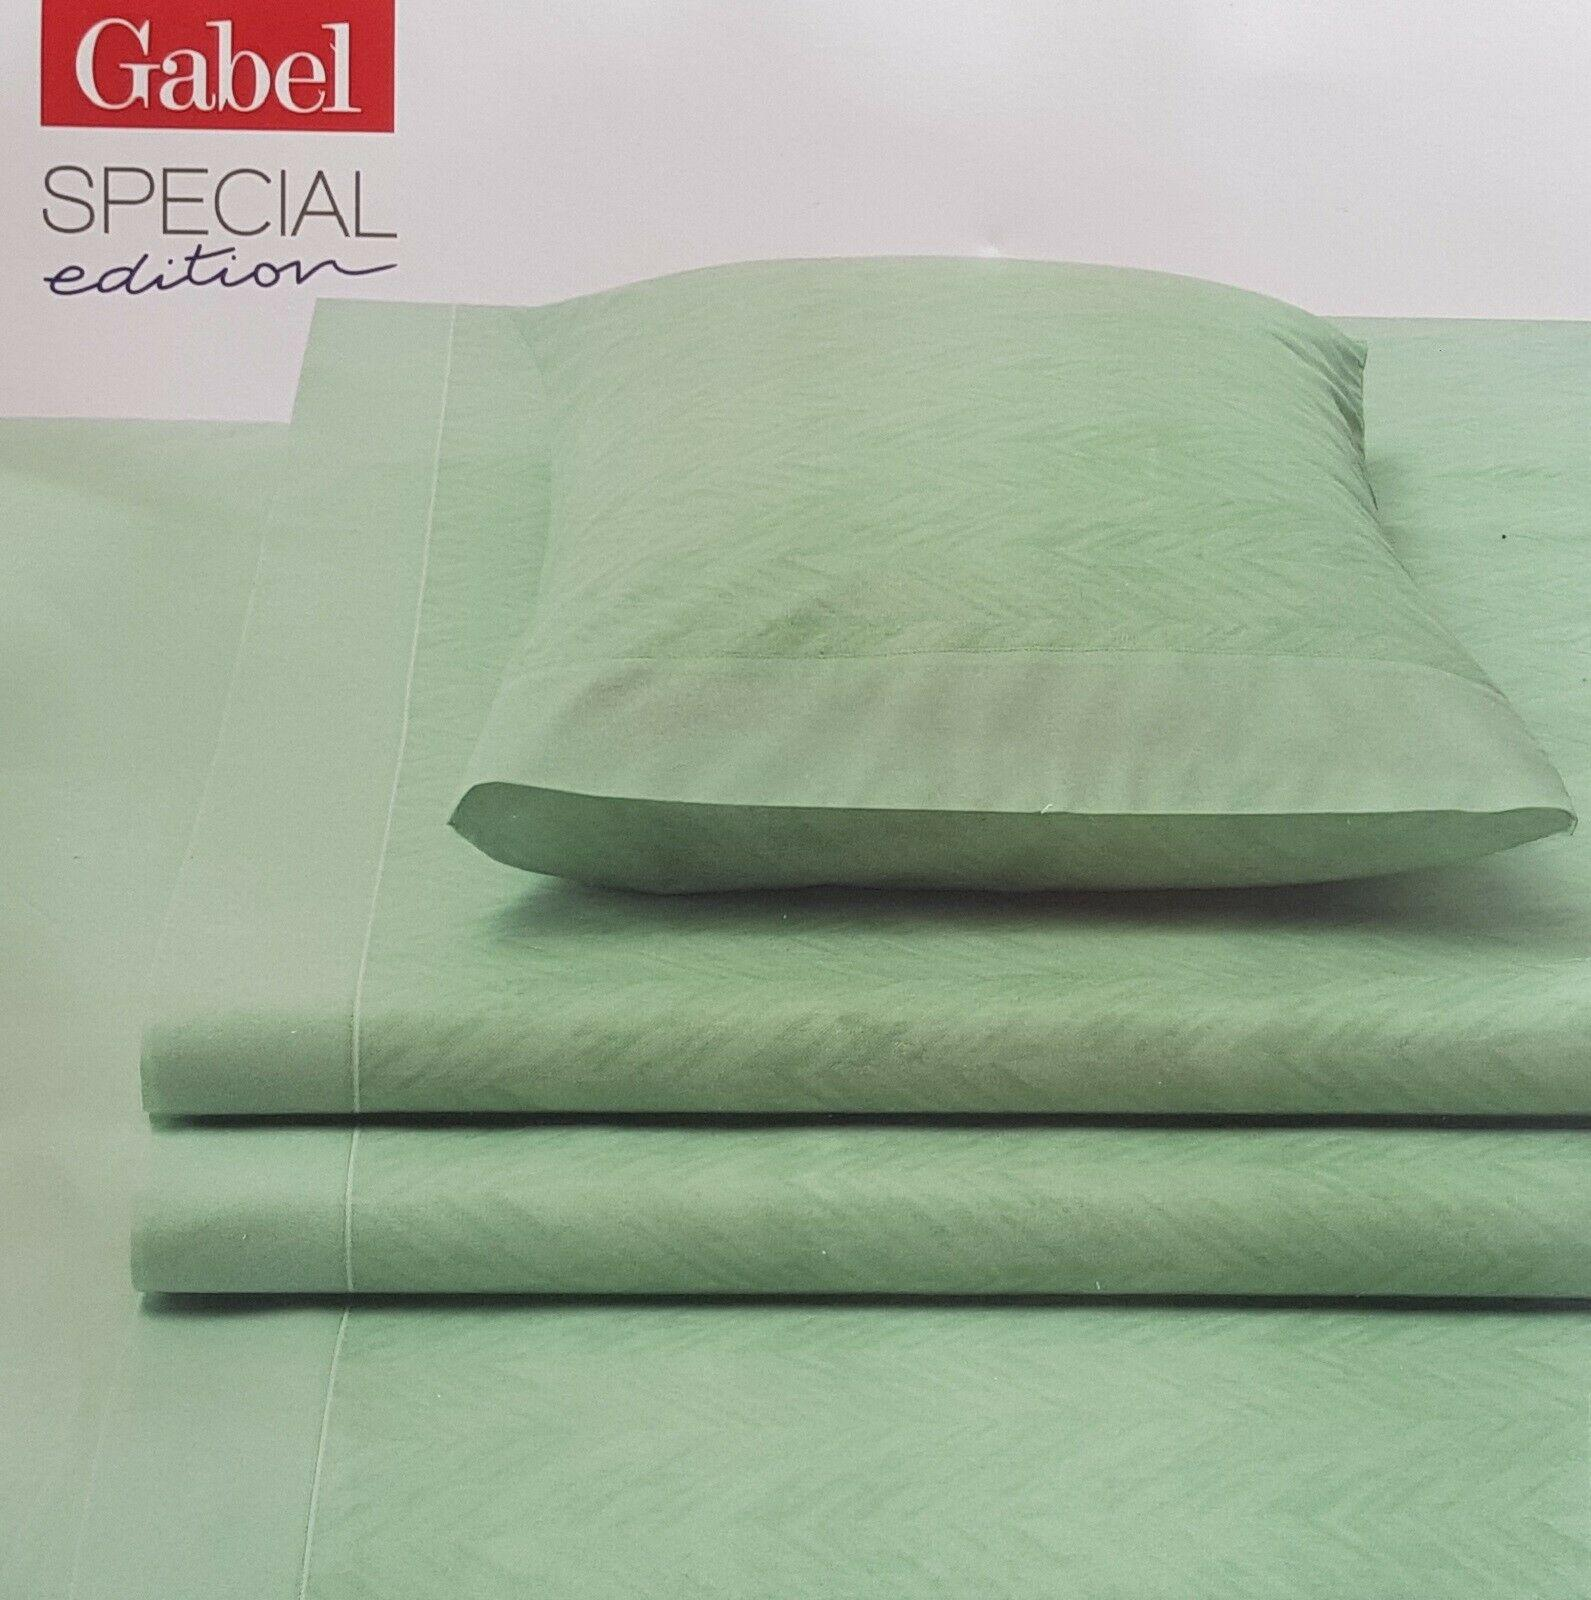 Lenzuola Completo letto Madapolam in Cotone GABEL, CAYMAN Matrimoniale, 2 piazze